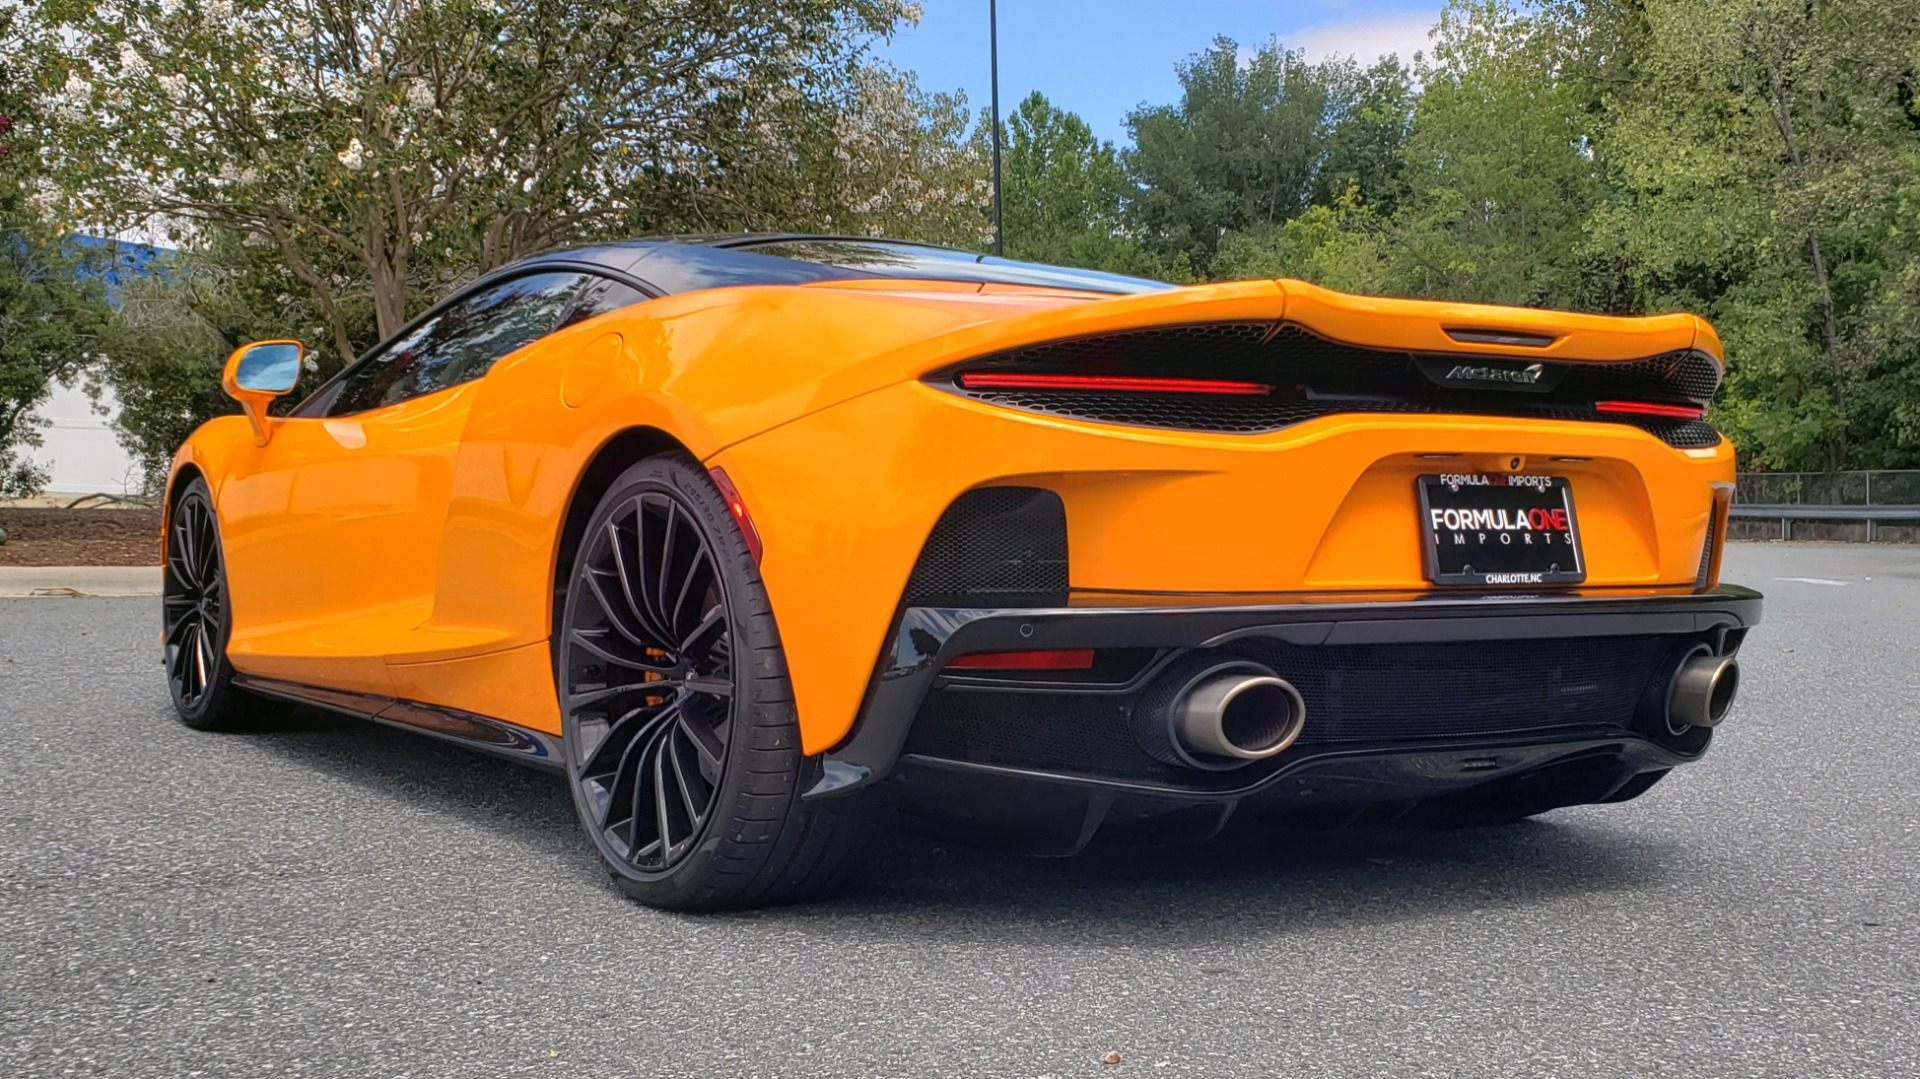 Used 2020 McLaren GT COUPE / 4.0L V8 - 612HP / RWD / NAV / REARVIEW / 20IN BLACK WHEELS for sale $244,000 at Formula Imports in Charlotte NC 28227 10